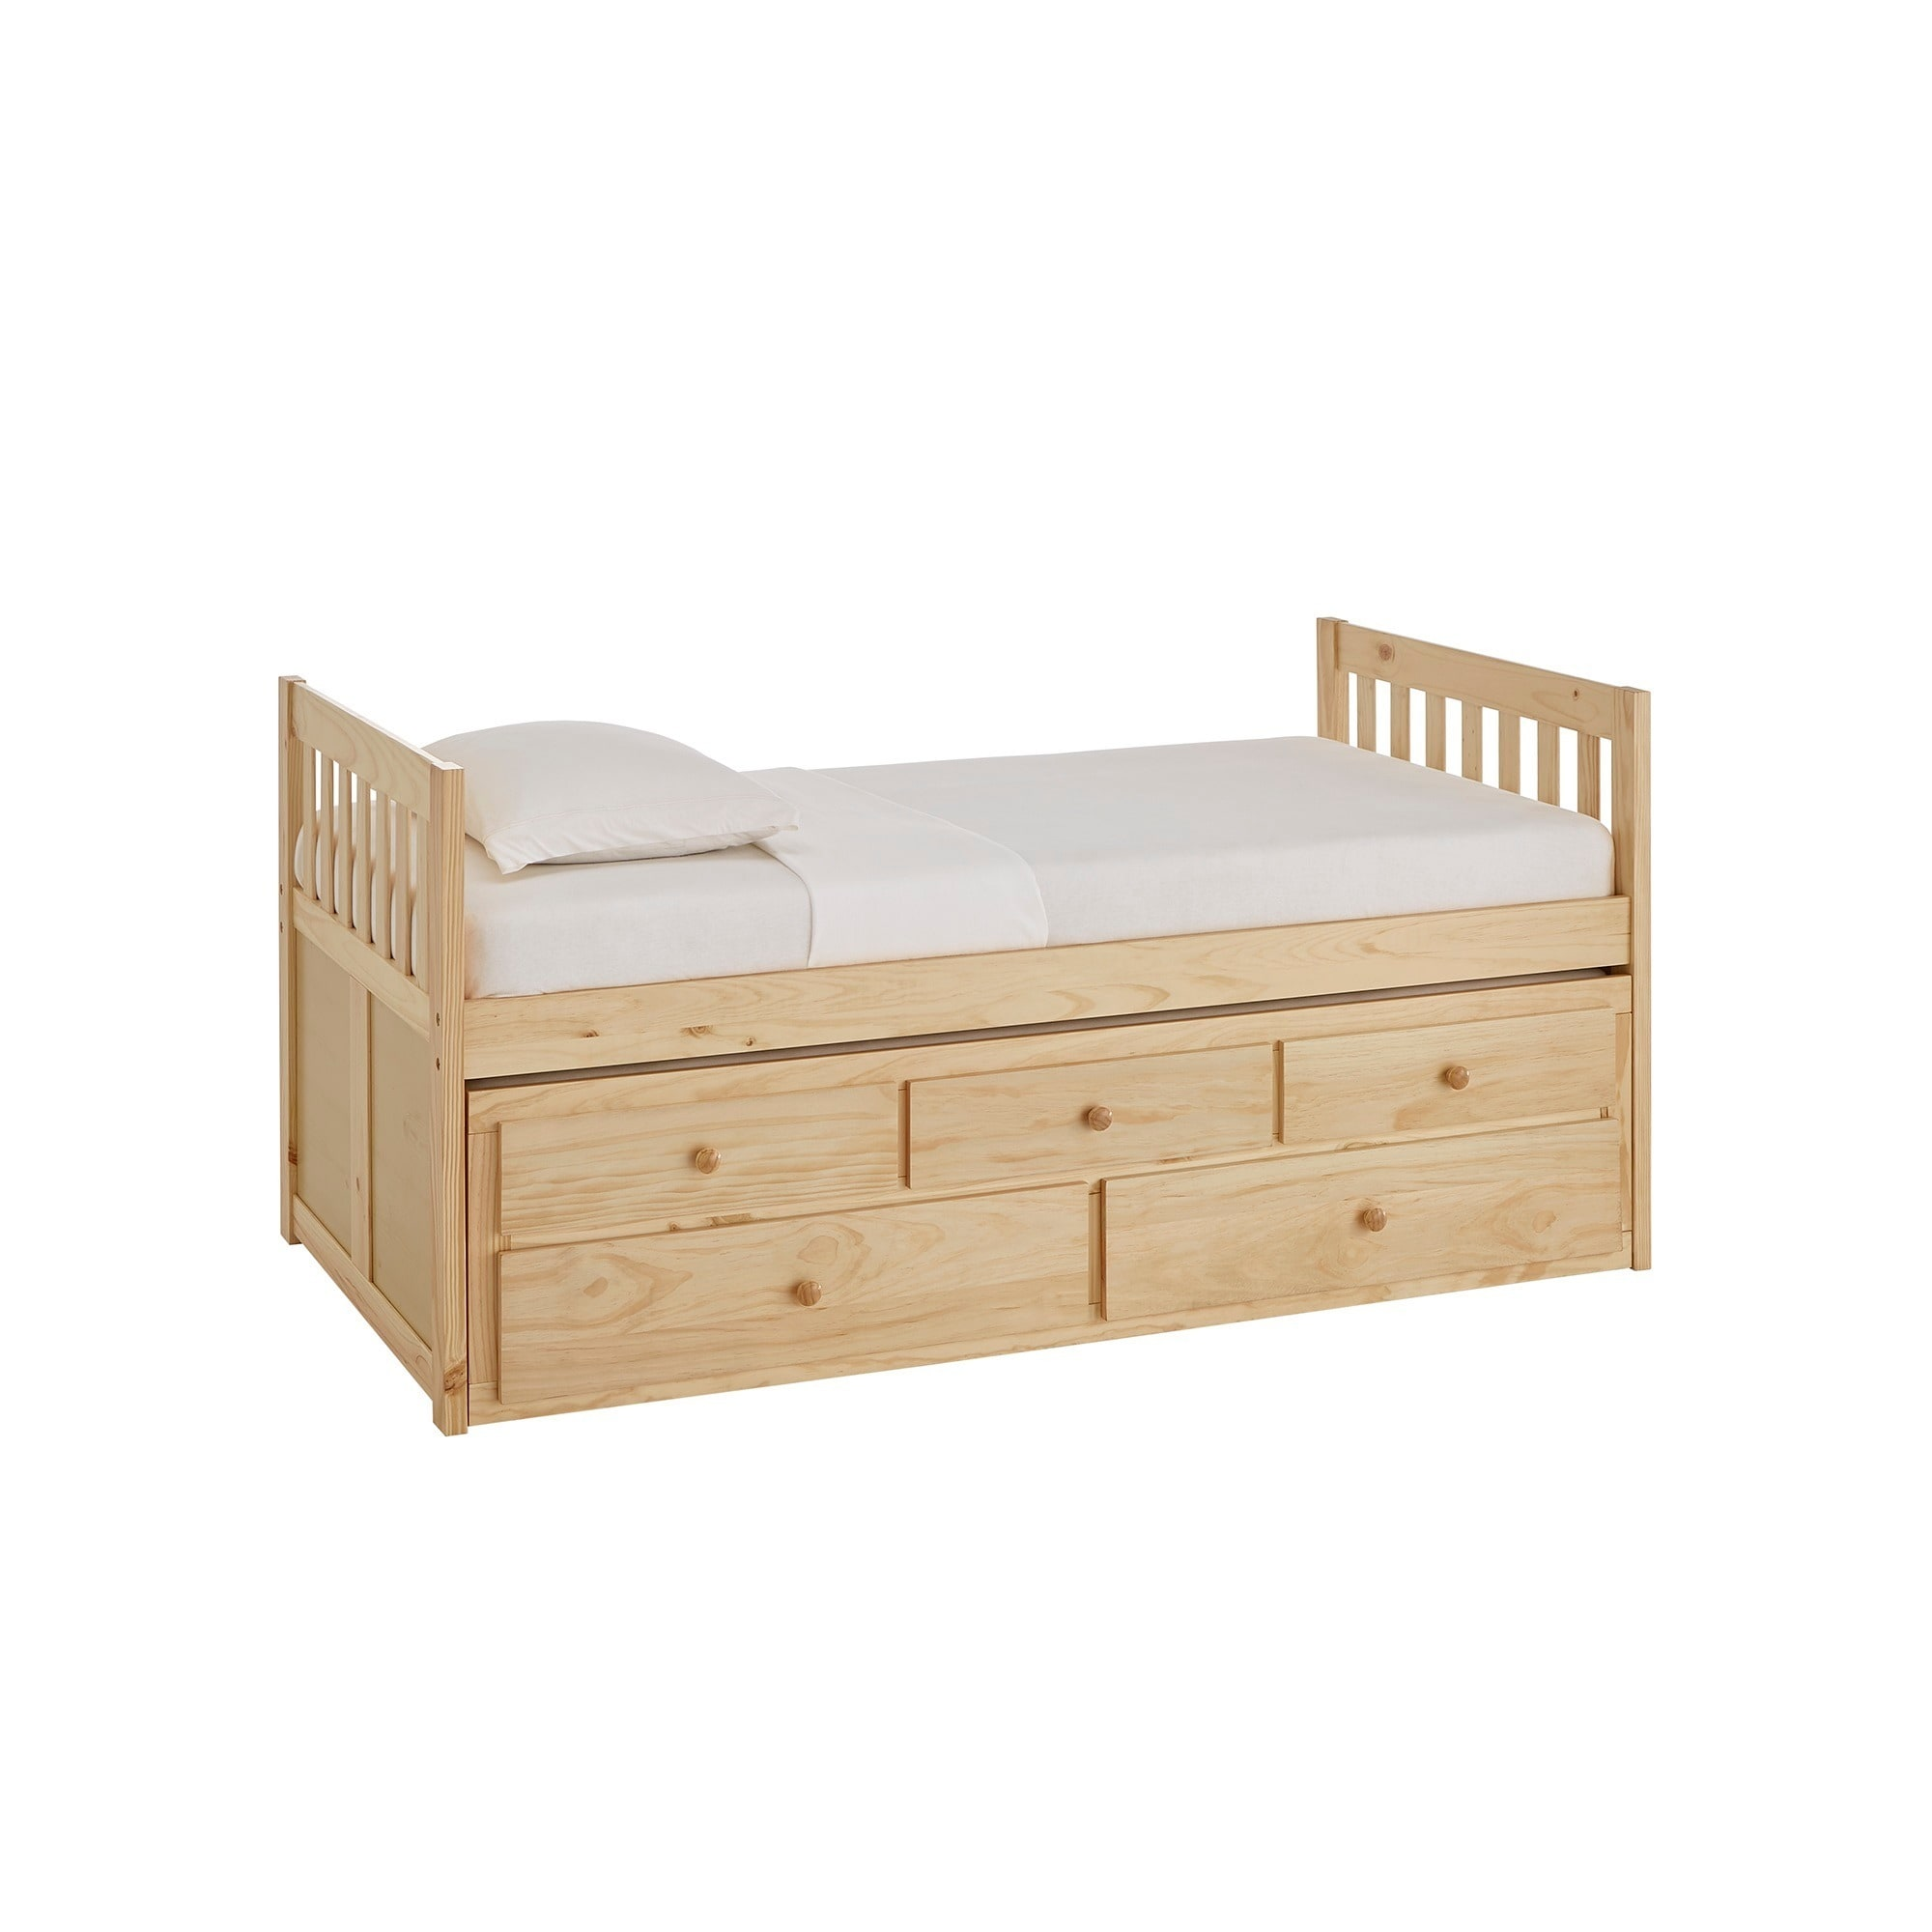 Hunter Twin Natural Wood Captains Bed With Trundle By Inspire Q Junior Overstock 19447175